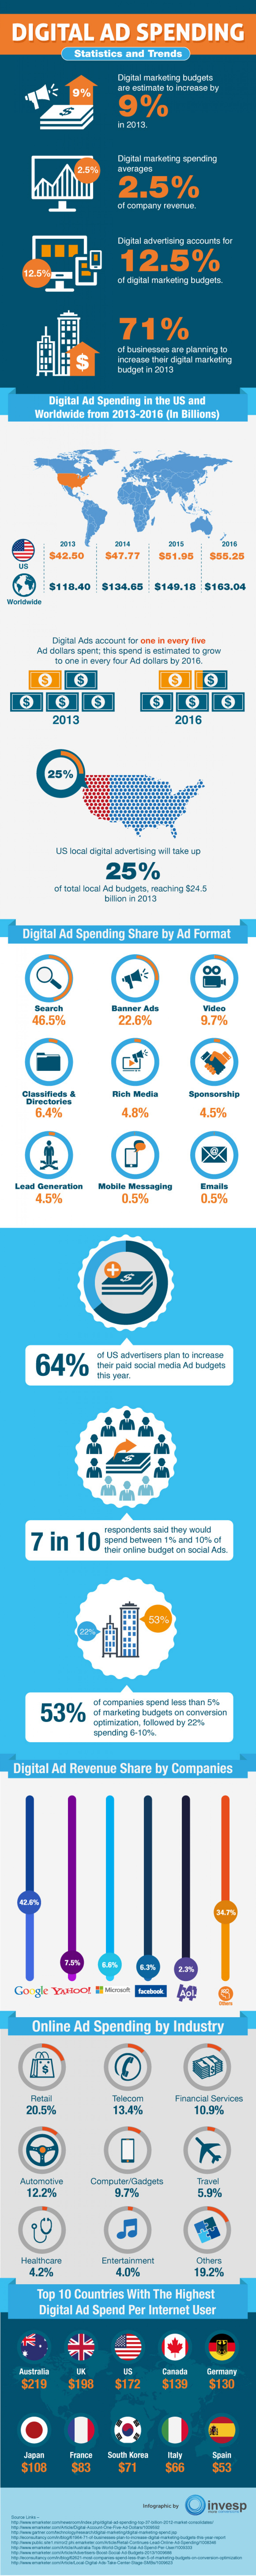 Digital Ad Spending – Statistics and Trends Infographic